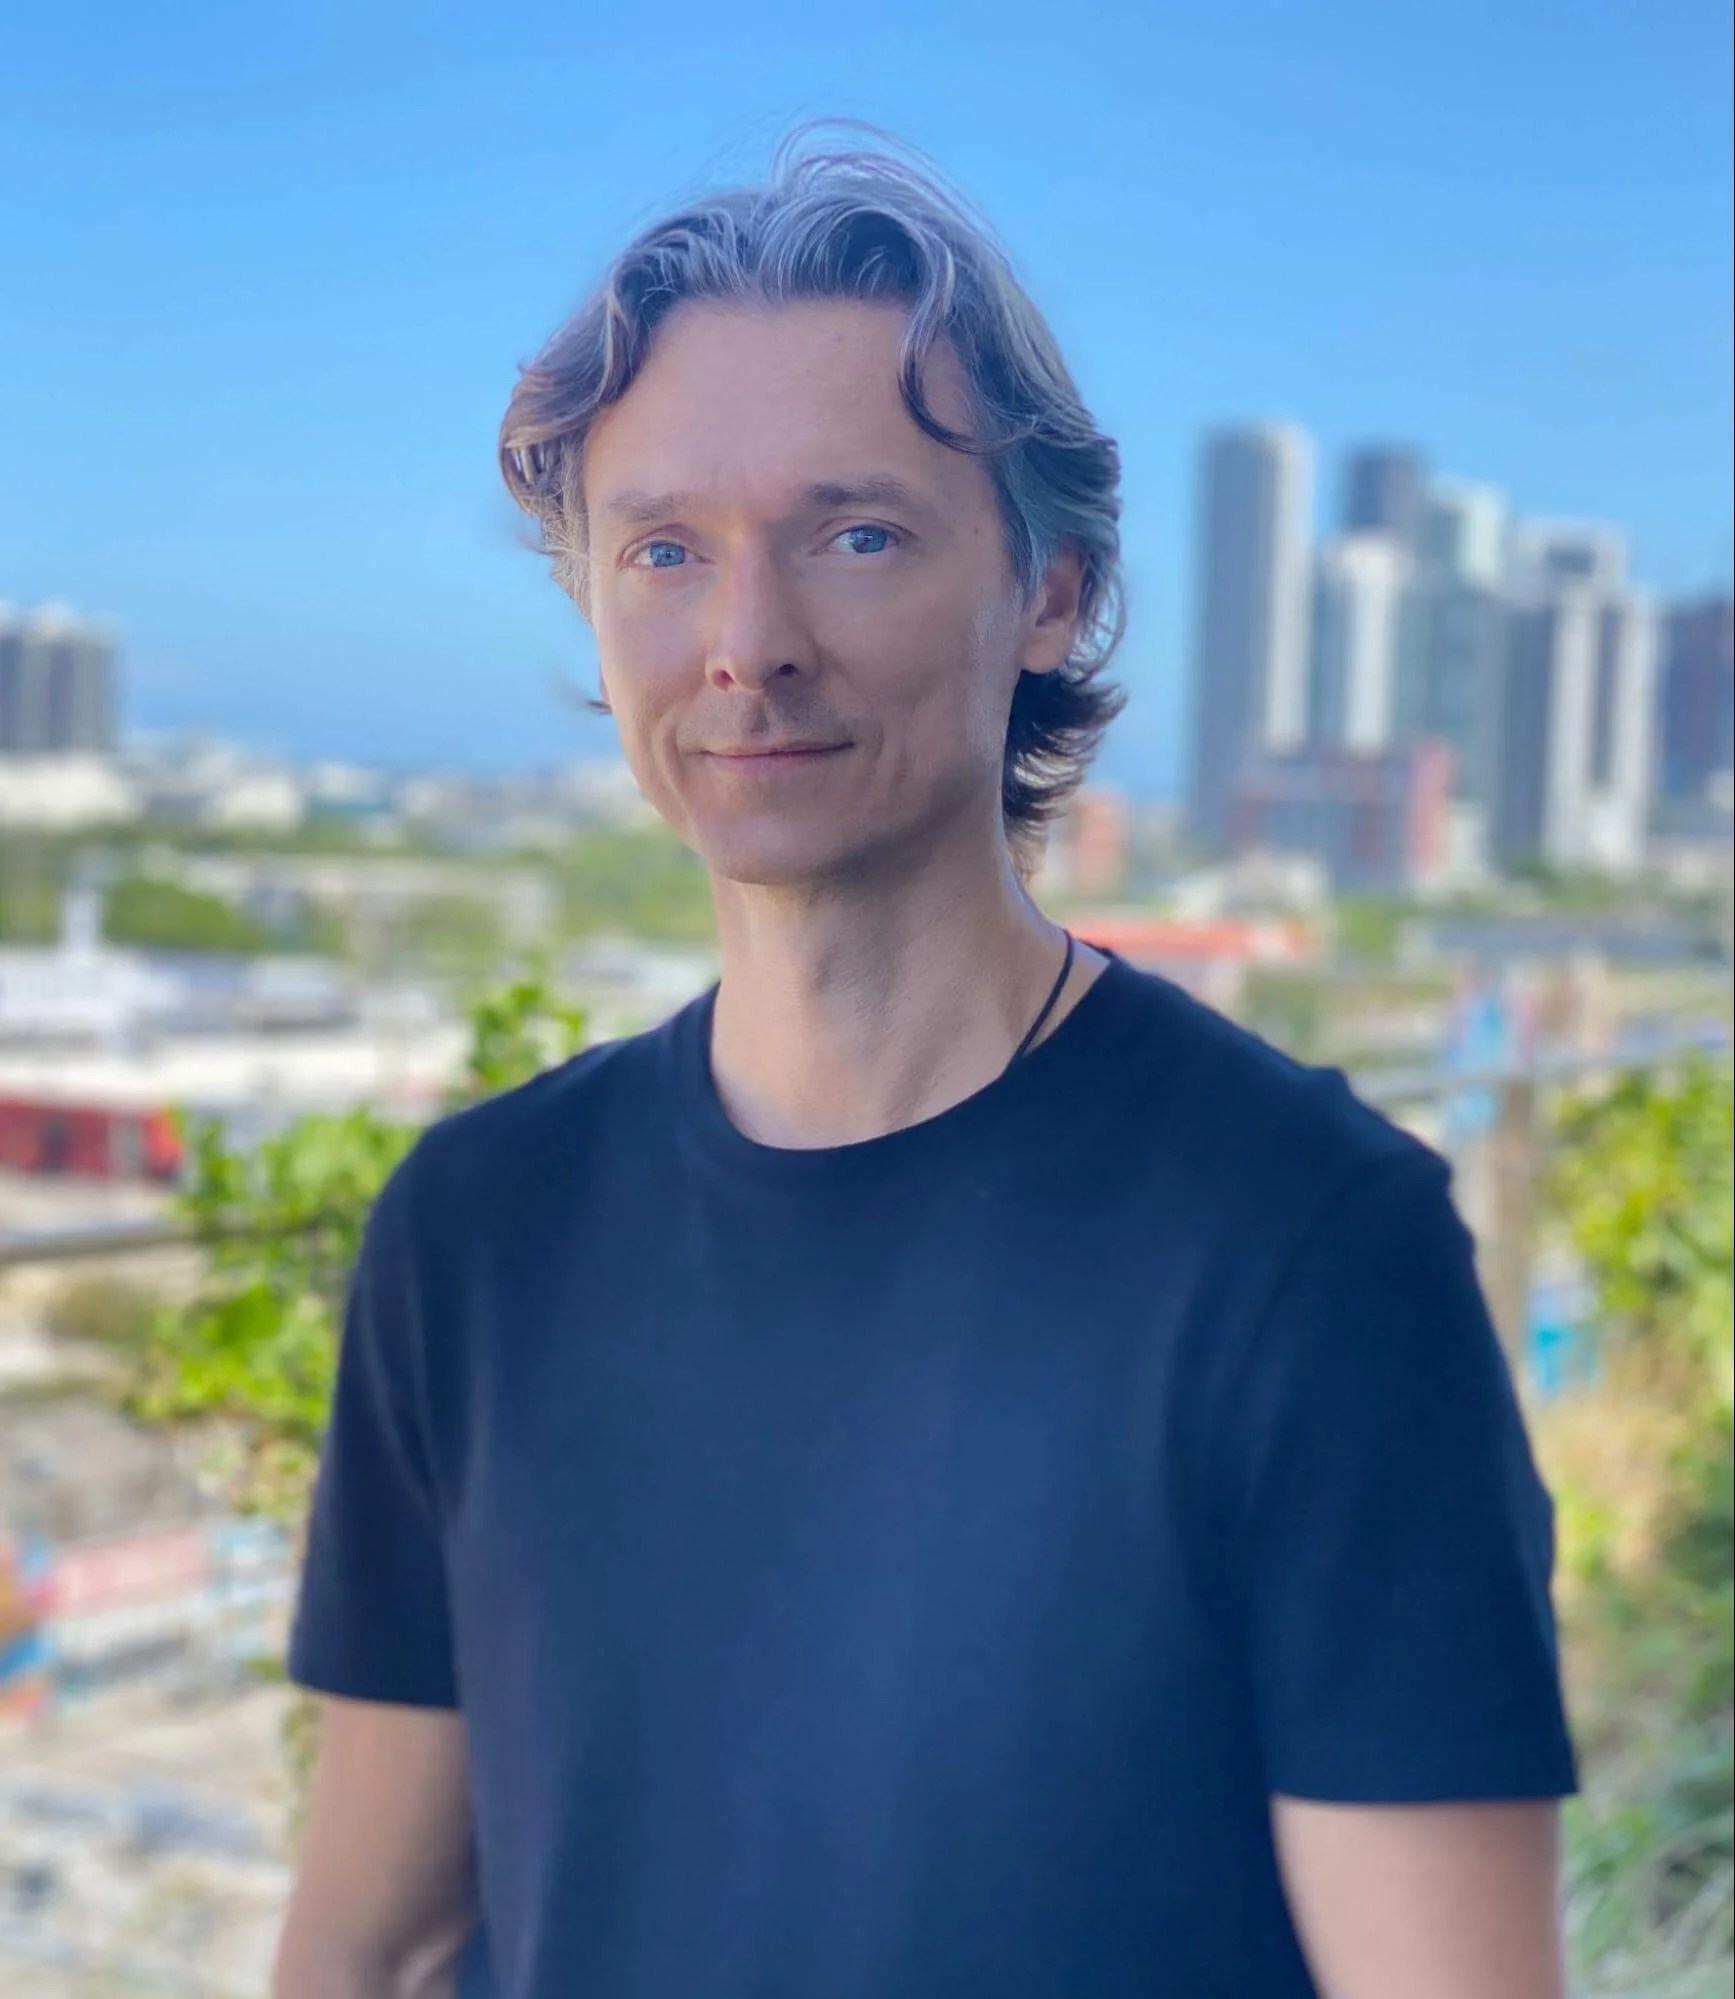 Gemini team co-founder and CEO Andrei Barysevich